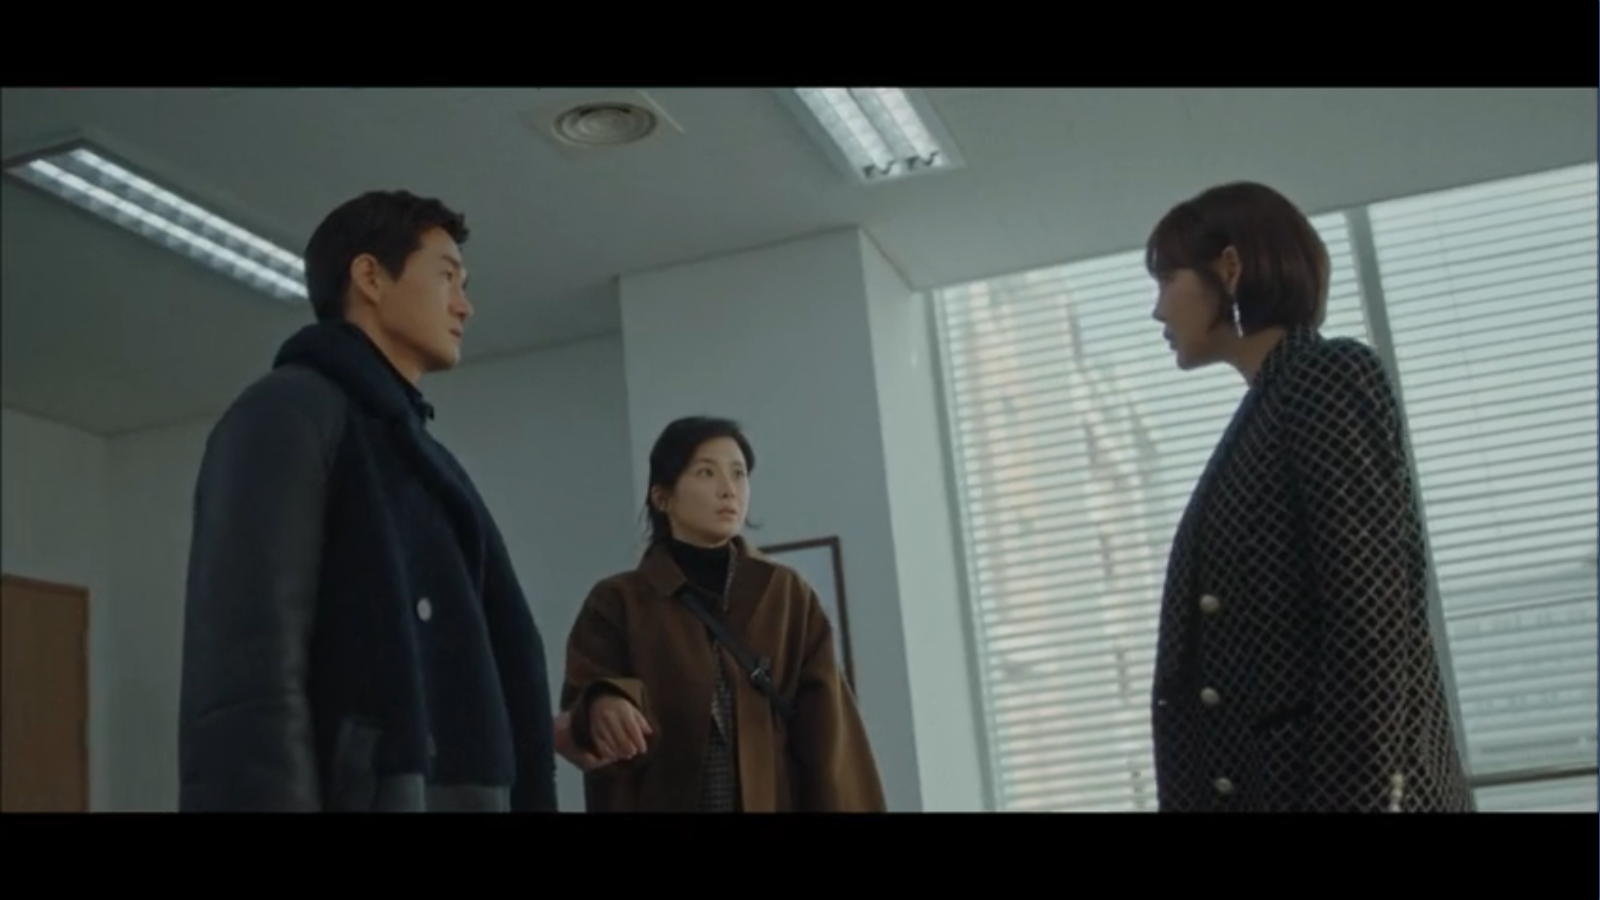 When My Love Blooms Episode 2 Han Jae-hyeon, Yoon Ji-soo, and Seo Kyung staring at each other in school office